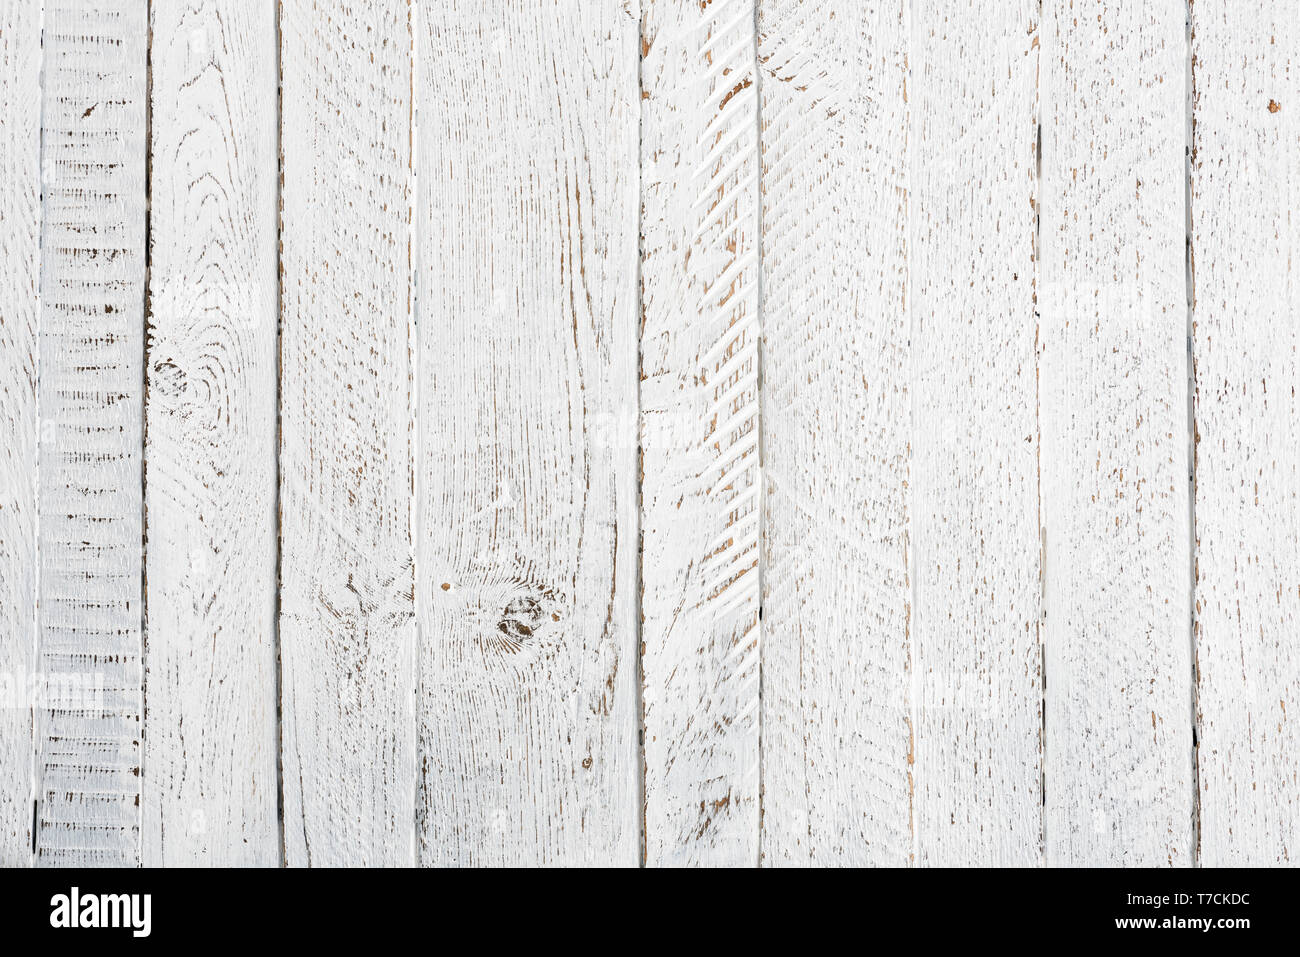 Old wooden table texture white painted and worn top view - Stock Image